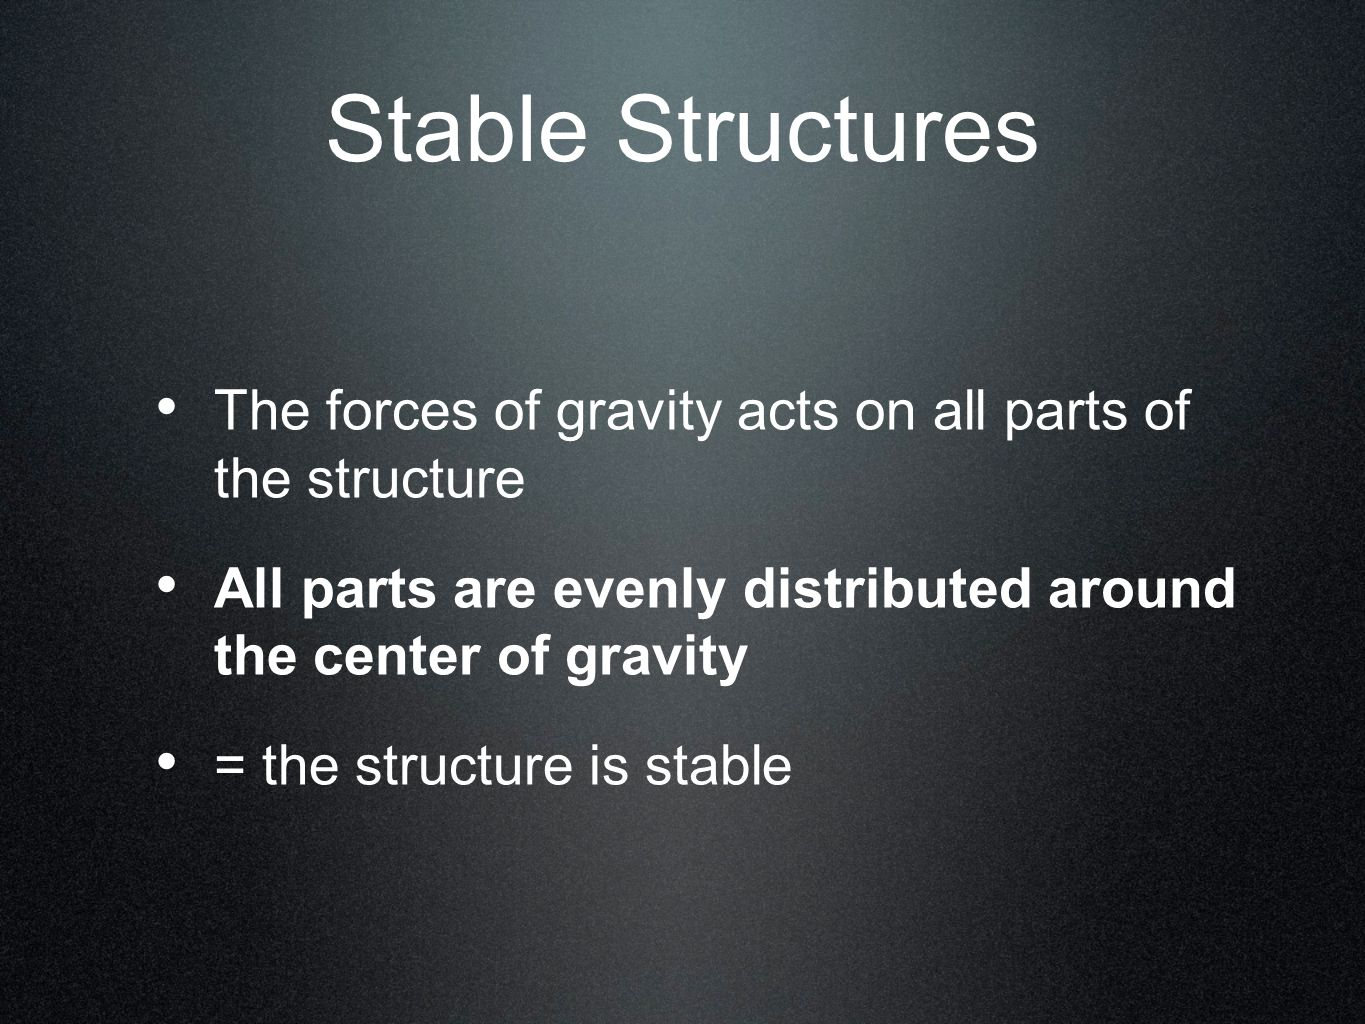 Stable Structures The forces of gravity acts on all parts of the structure. All parts are evenly distributed around the center of gravity.